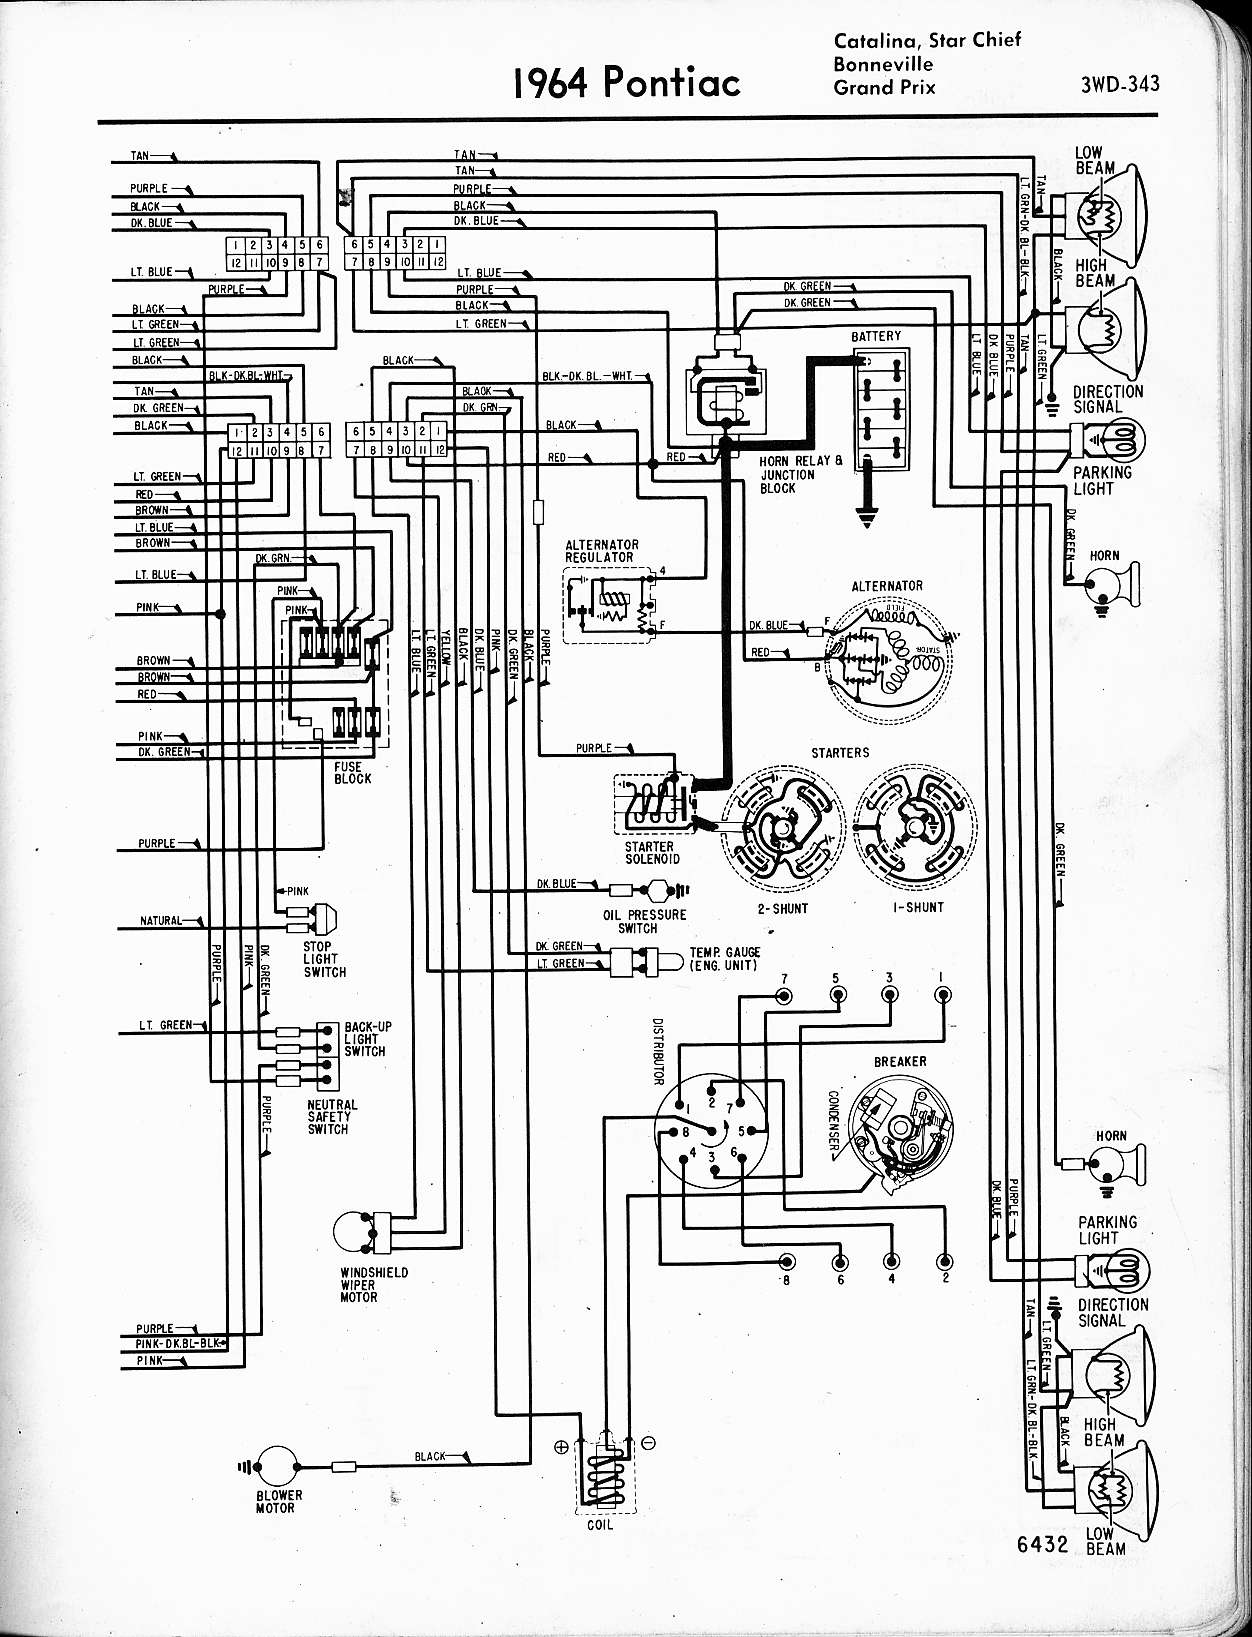 MWire5765 343 wallace racing wiring diagrams Basic Turn Signal Wiring Diagram at edmiracle.co